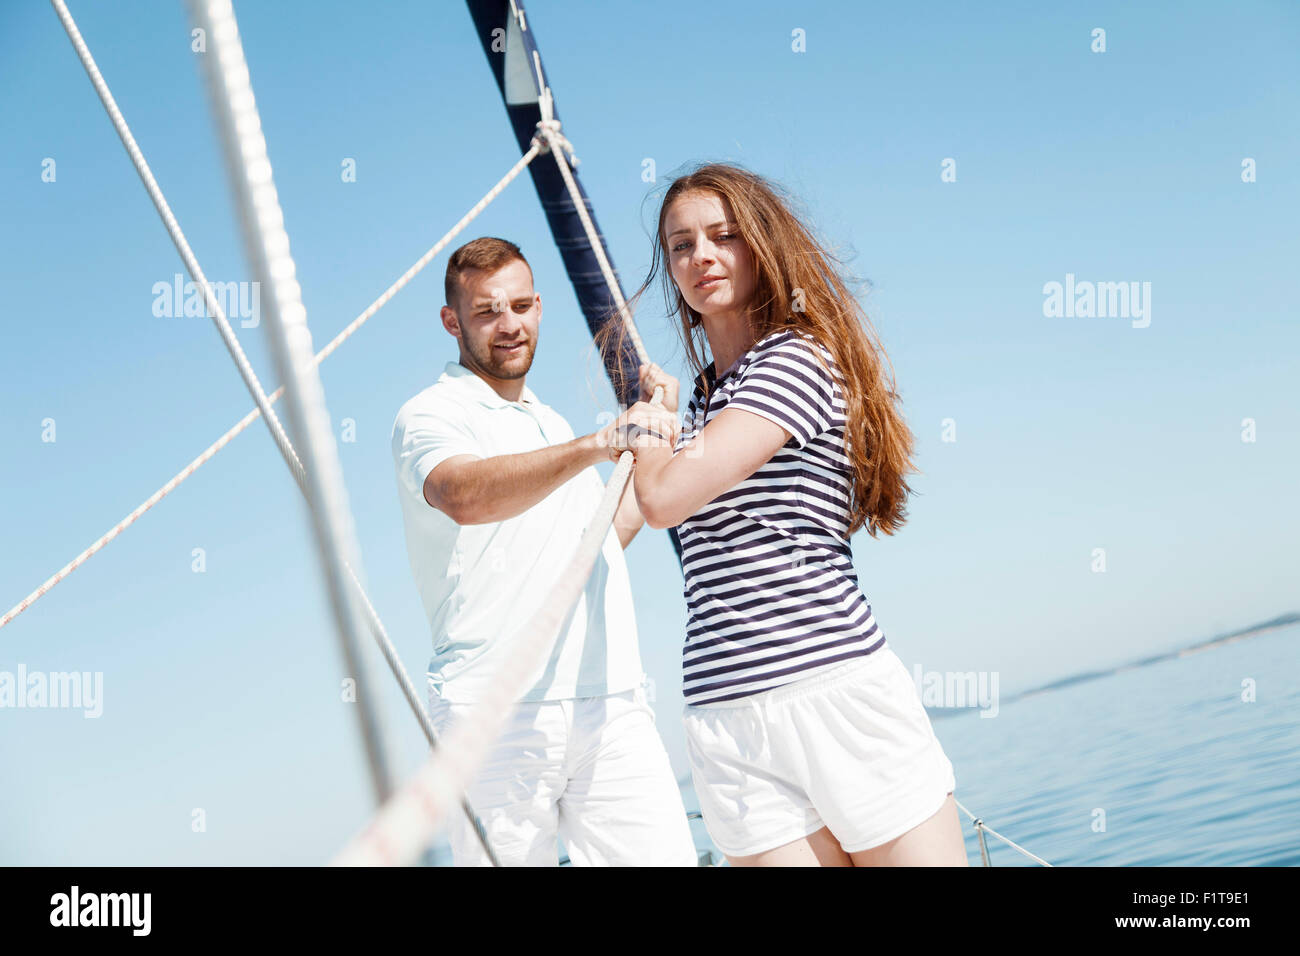 Young couple on sailboat, Adriatic Sea - Stock Image